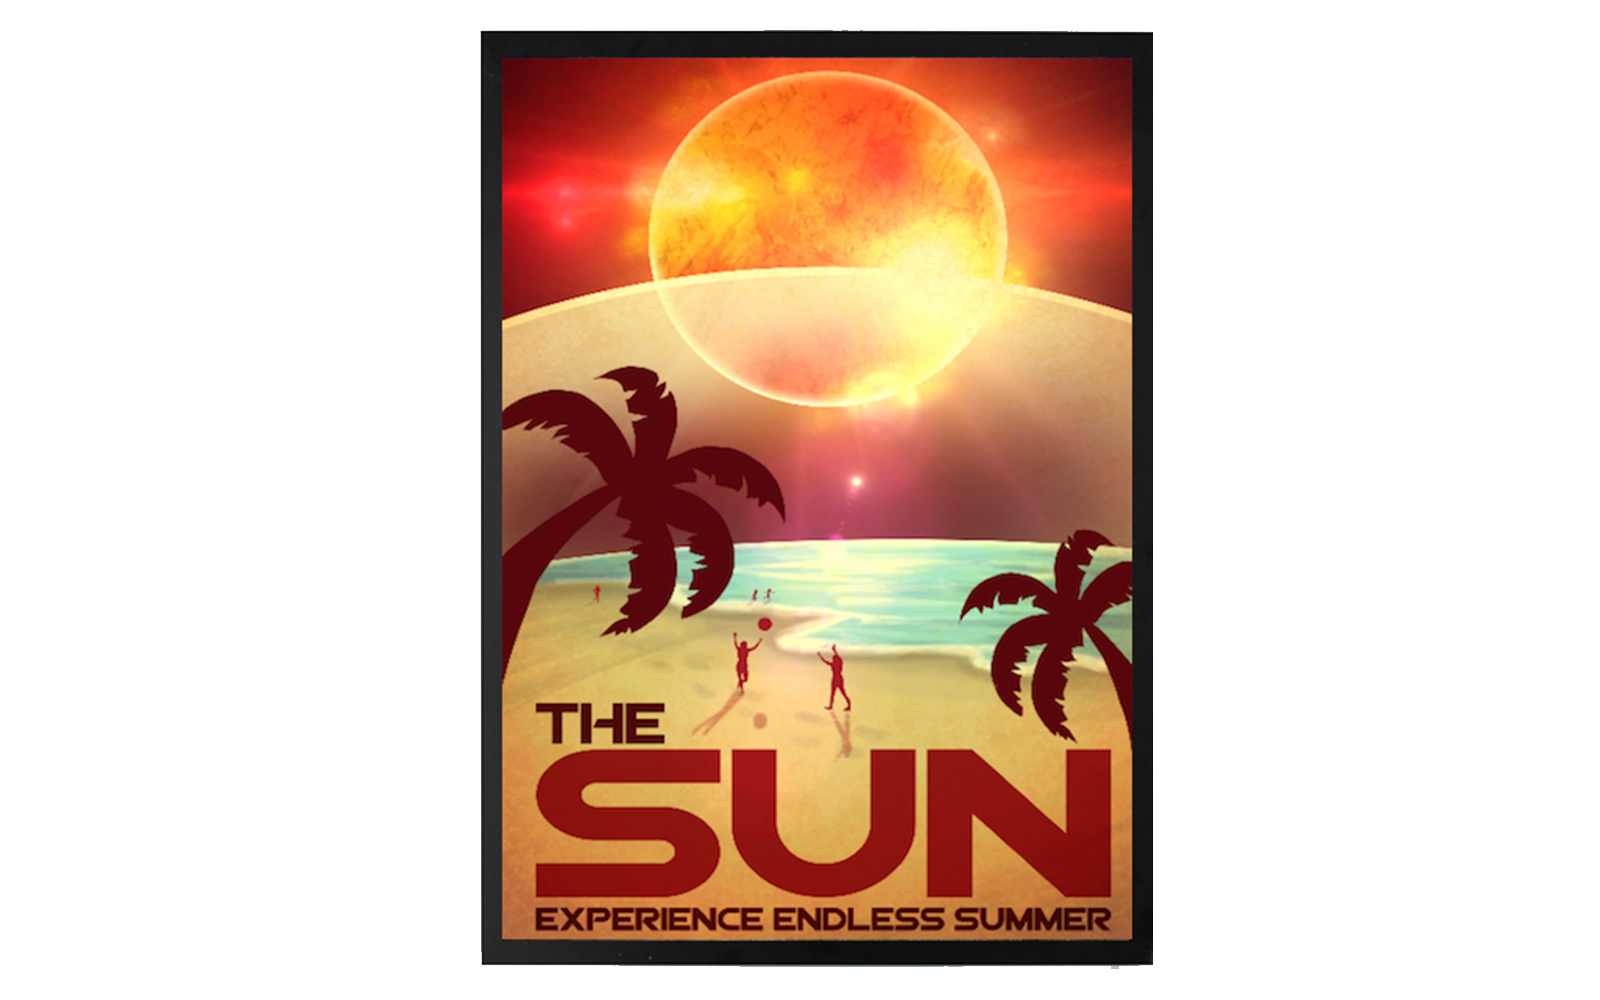 Vintage Space Travel Posters: Perfect Your Summer Tan on The Sun